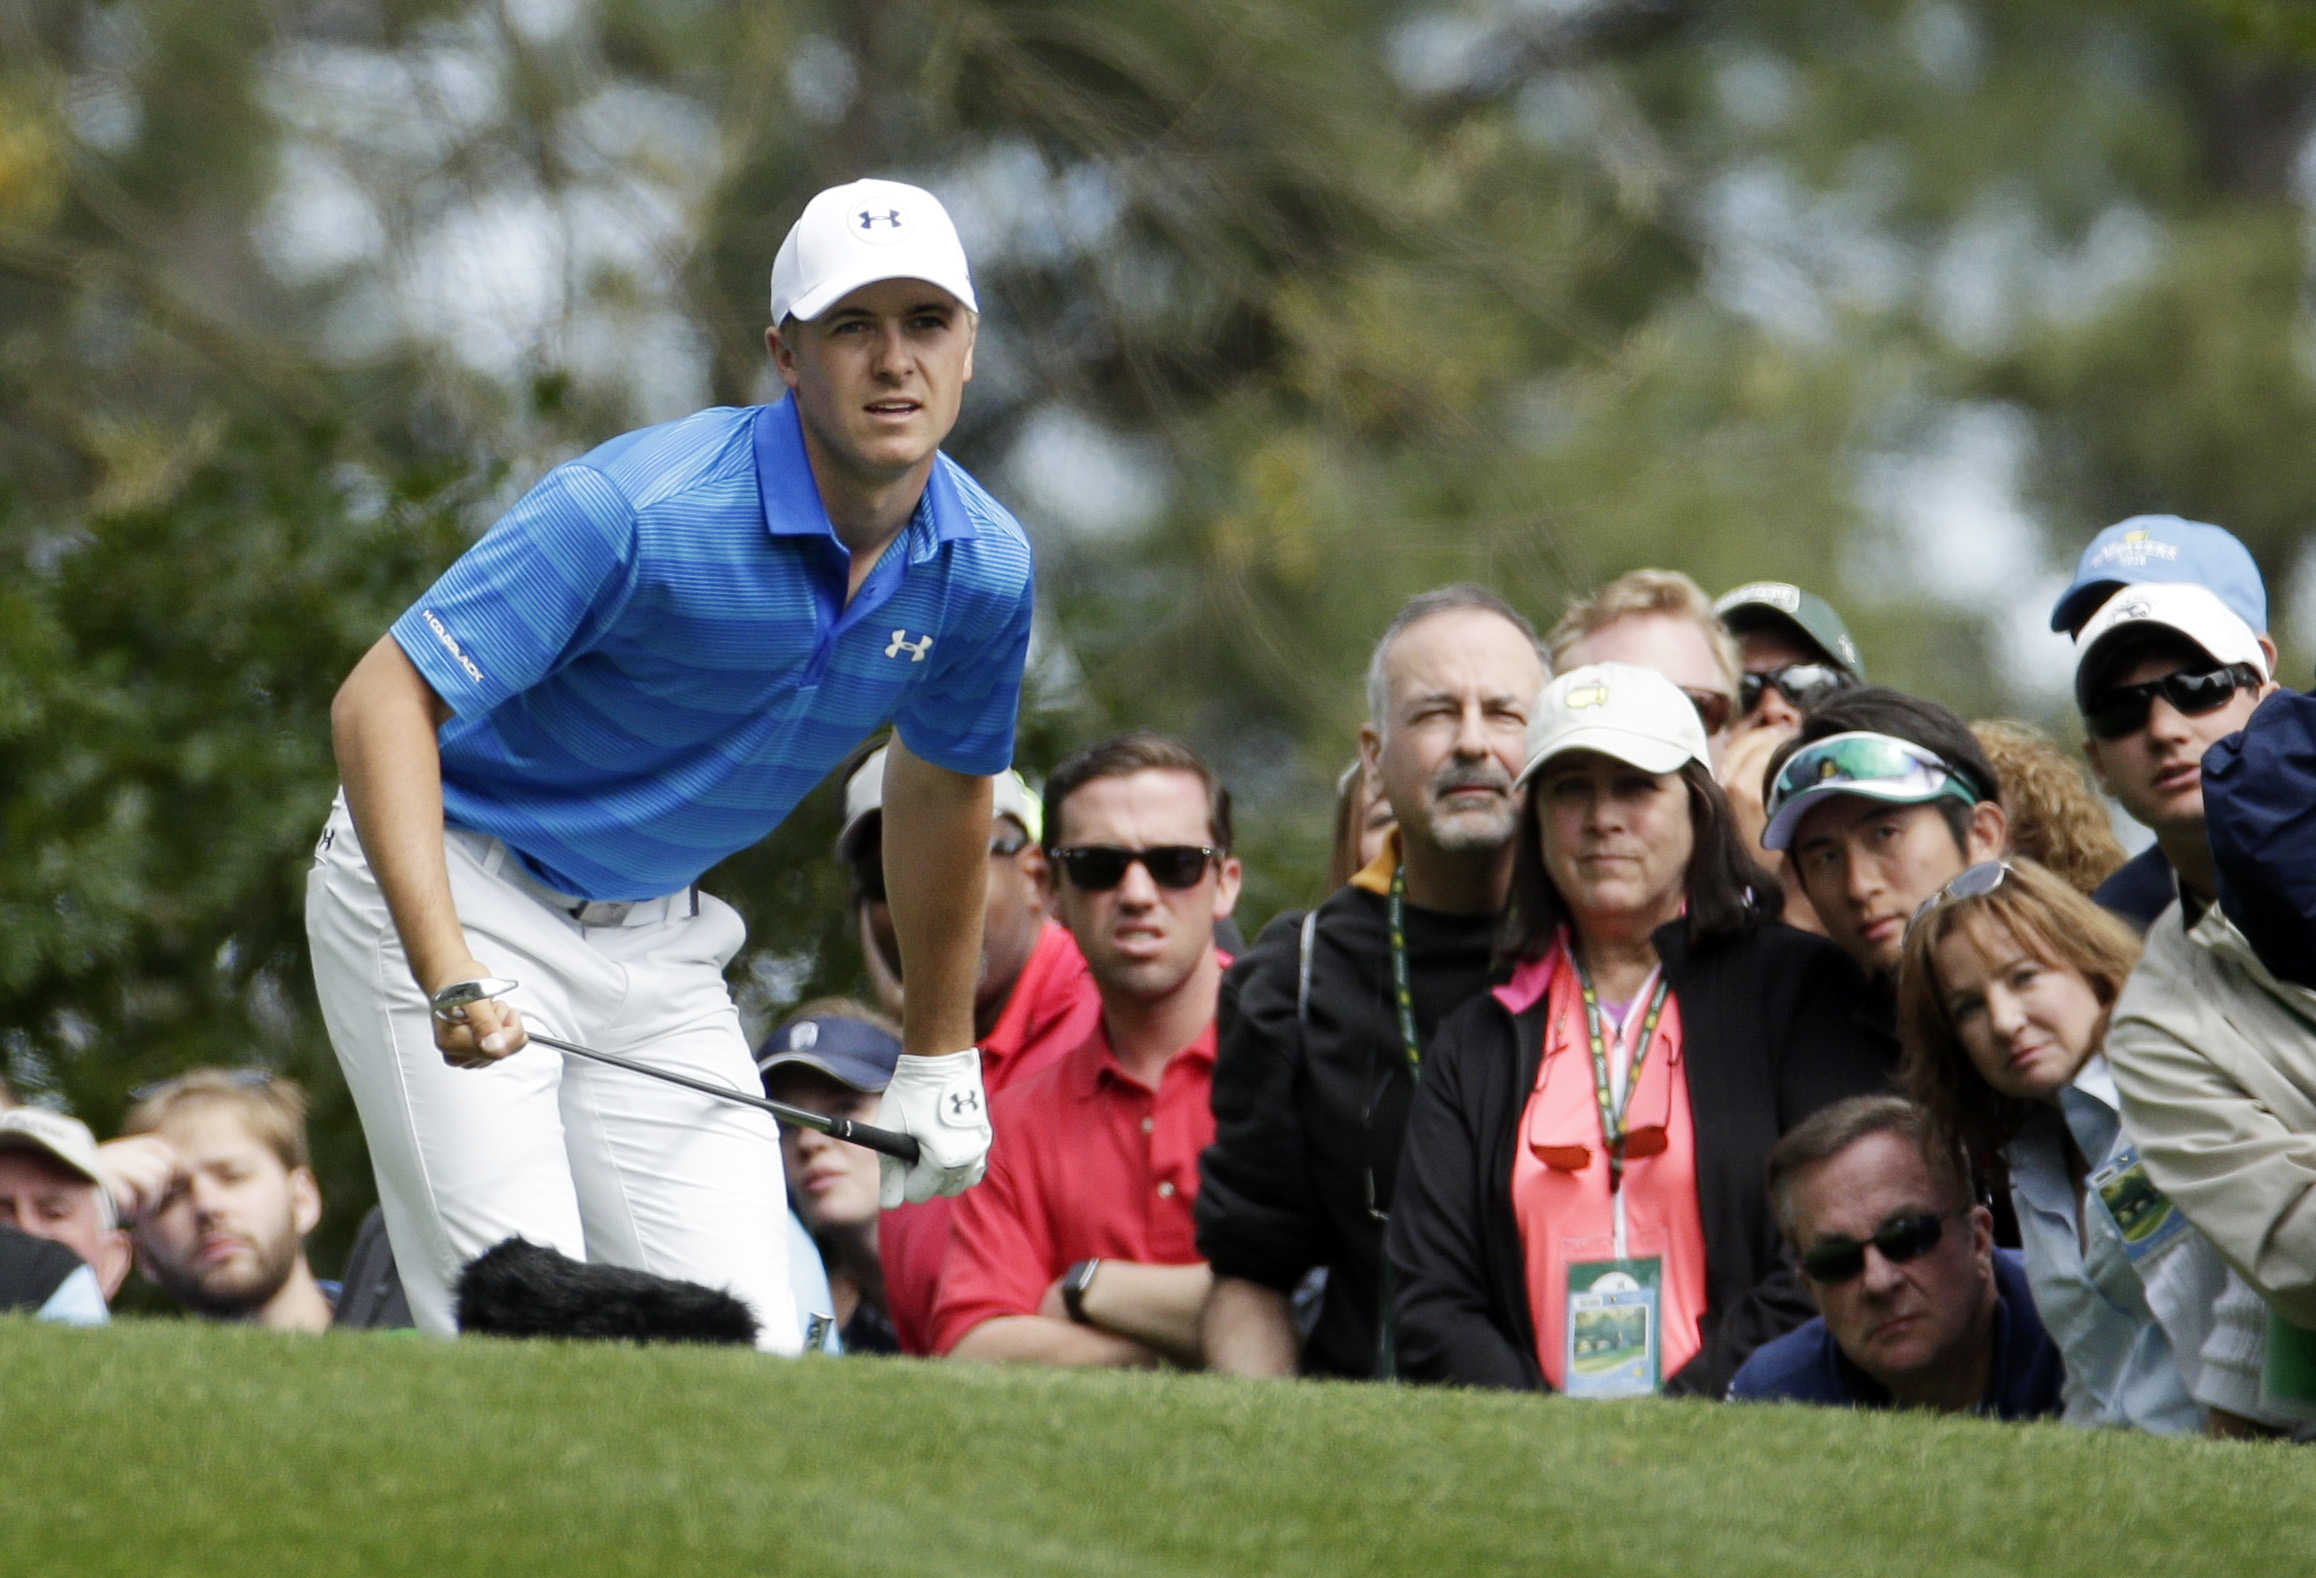 Jordan Spieth watches his tee shot on the fourth hole during the final round of the Masters golf tournament Sunday, April 10, 2016, in Augusta, Ga. (AP Photo/Charlie Riedel)